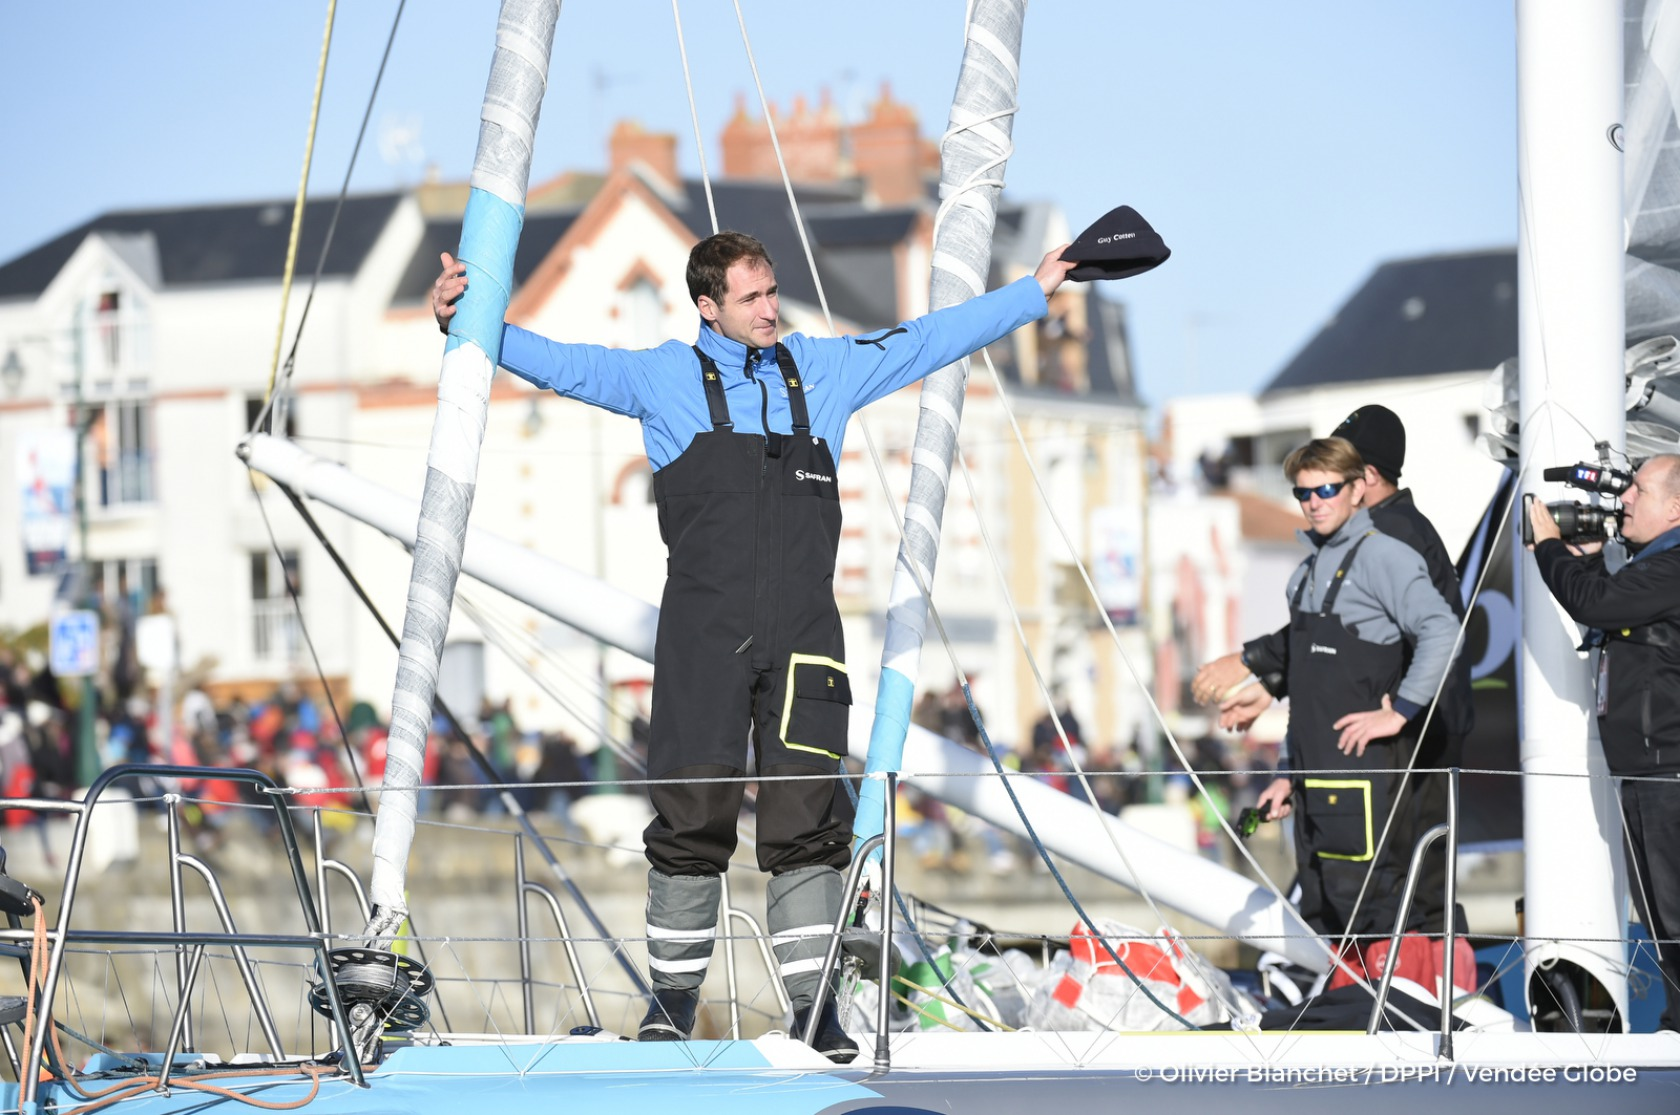 Channel ambiance with Morgan Lagraviere (FRA), skipper Safran, start of the Vendee Globe, in Les Sables d'Olonne, France, on November 6th, 2016 - Photo Olivier Blanchet / DPPI / Vendee Globe